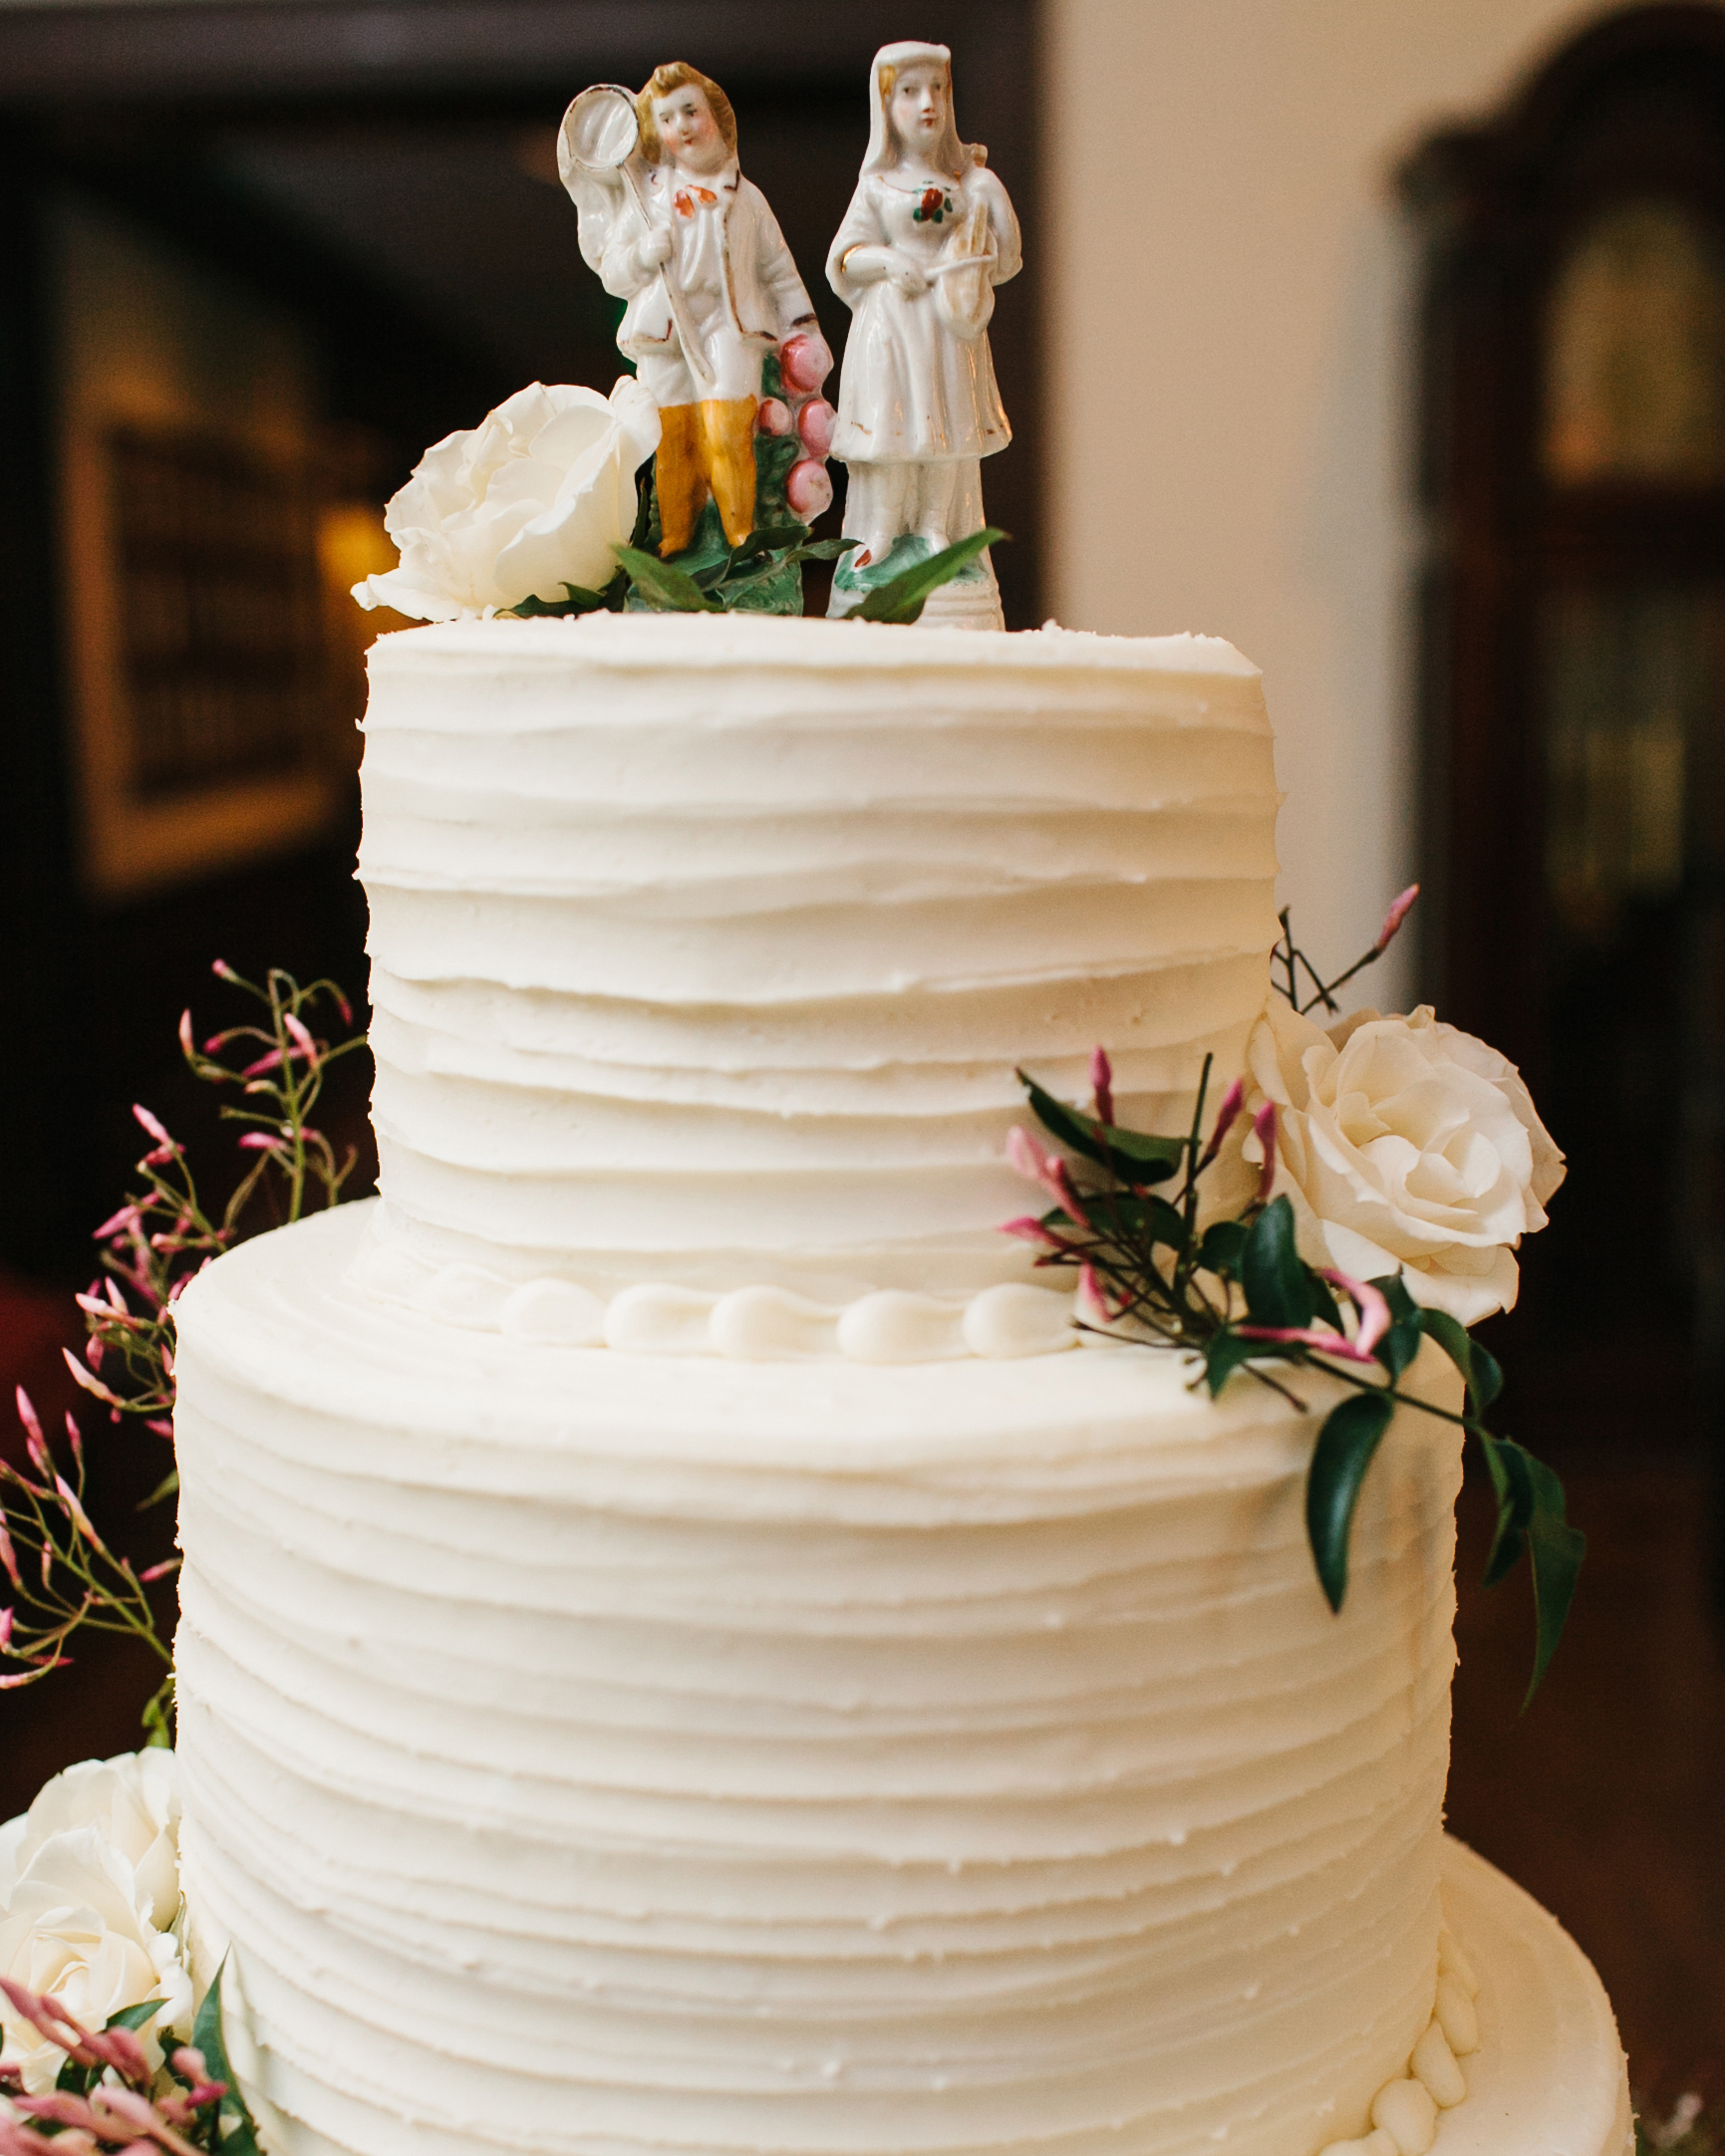 Serving a Wedding Cake